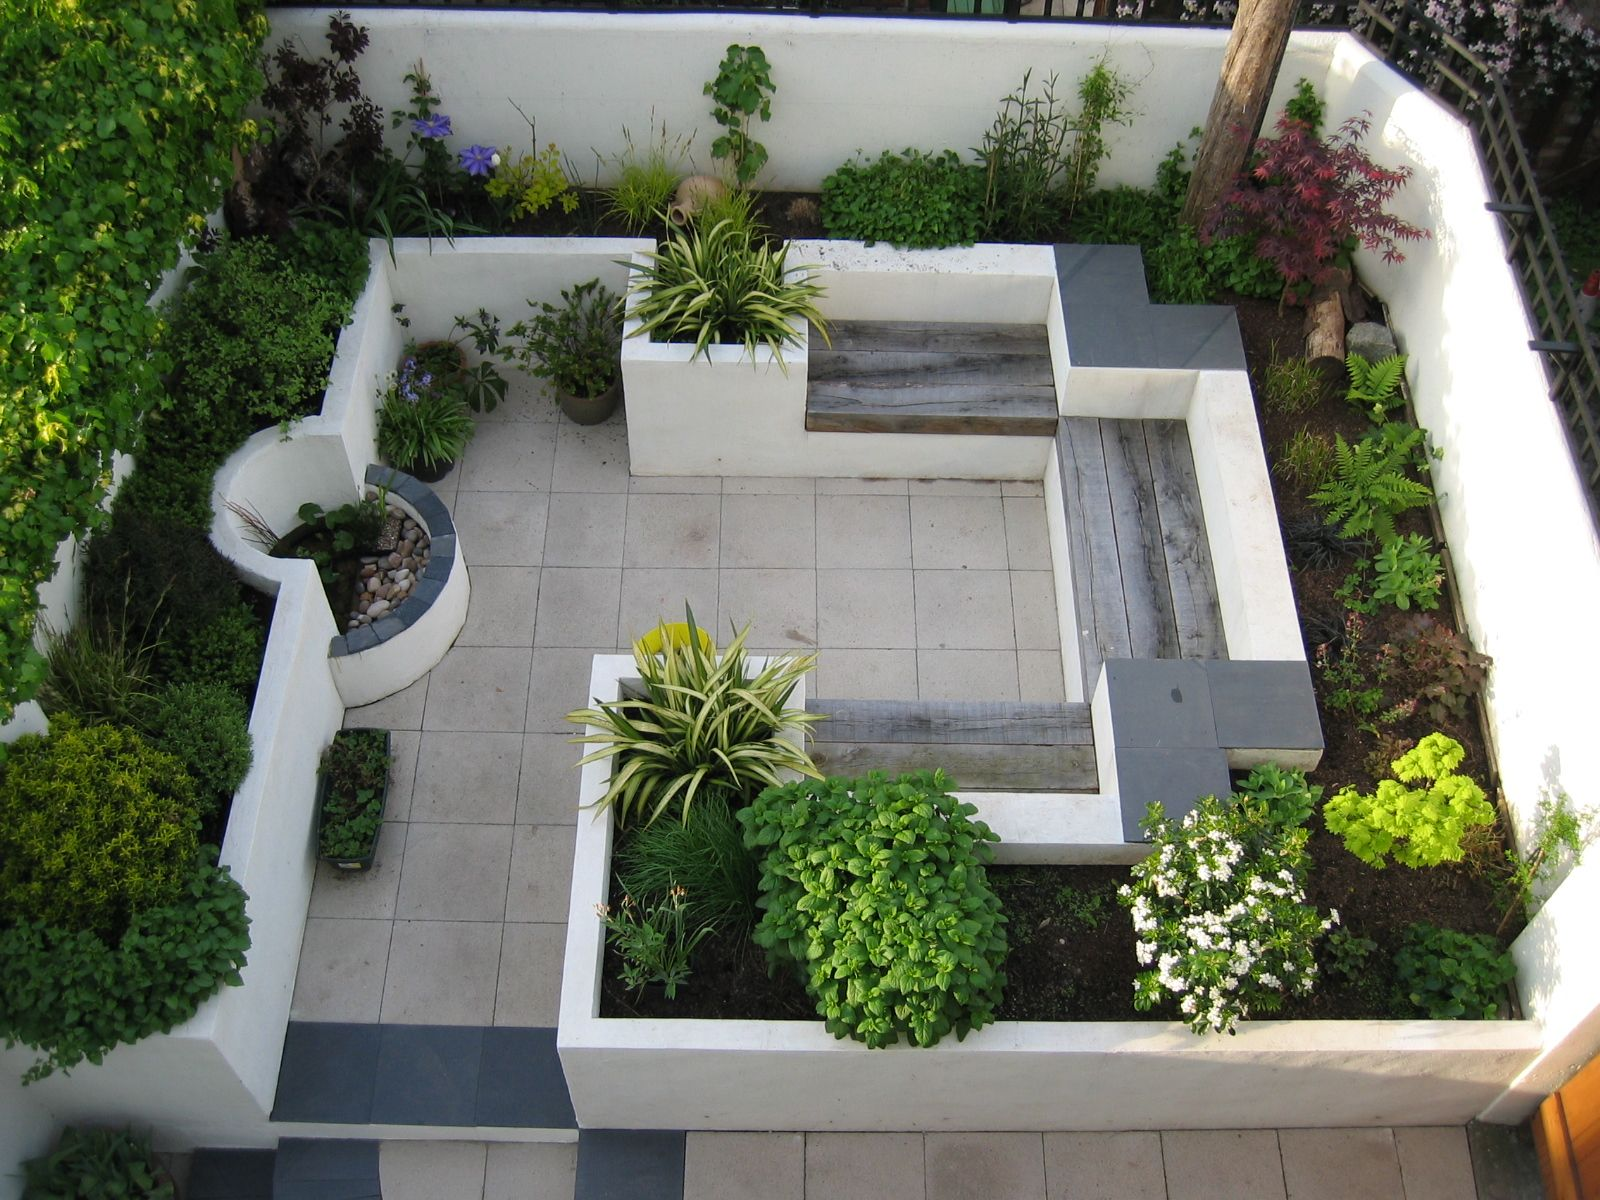 This modern courtyard garden makes good use of a small for Modern garden design for small spaces